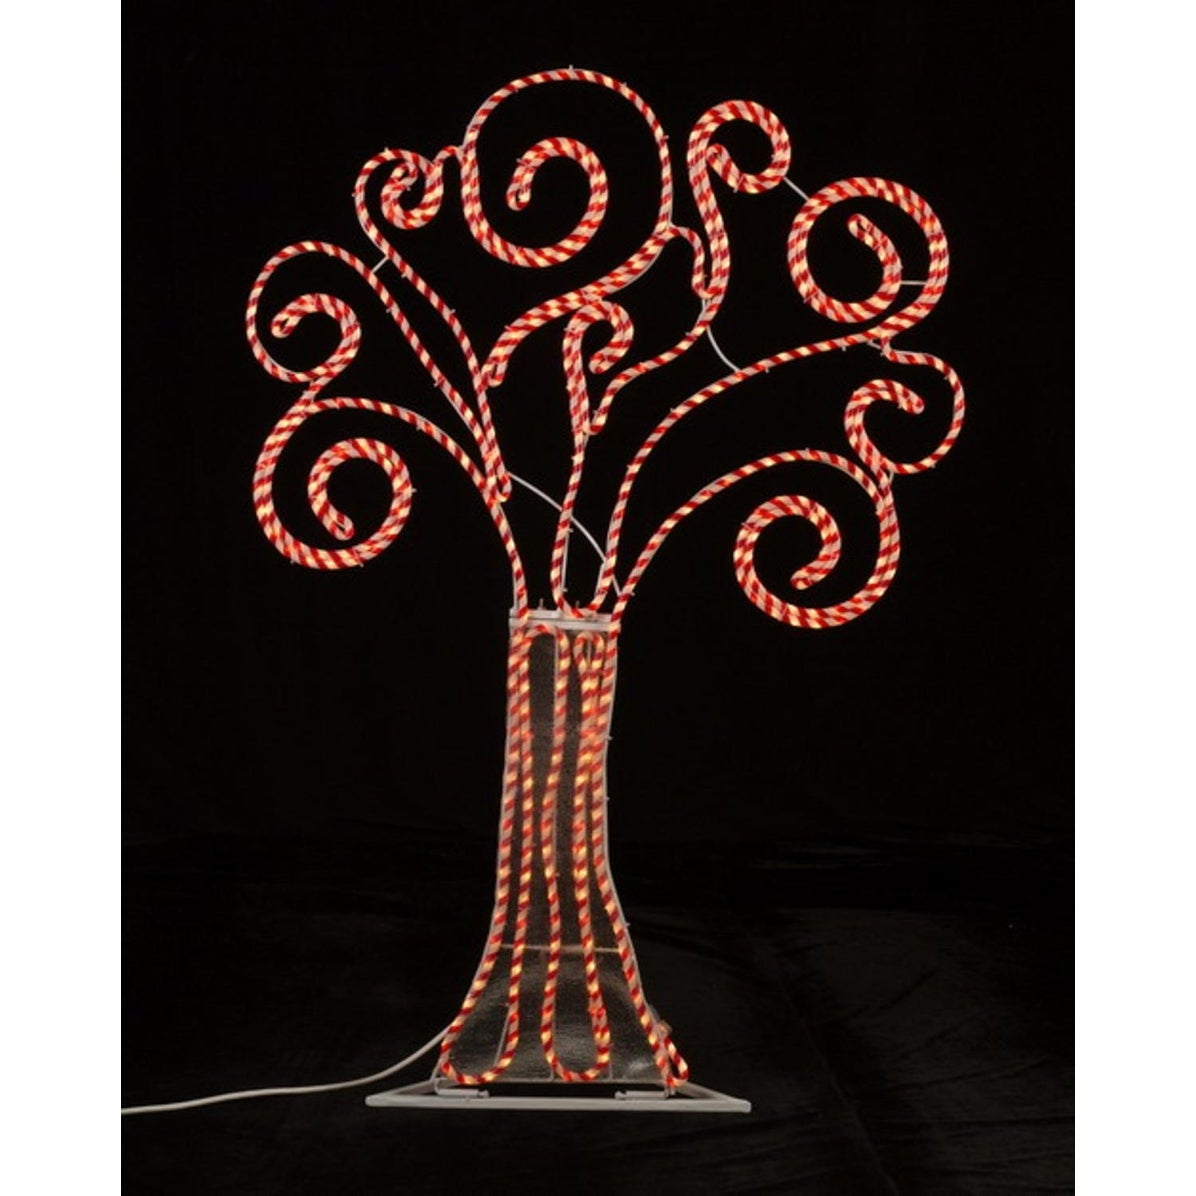 4' Pre-Lit Peppermint Twist Swirl Rope Light Christmas Tree Outdoor Decoration thumbnail